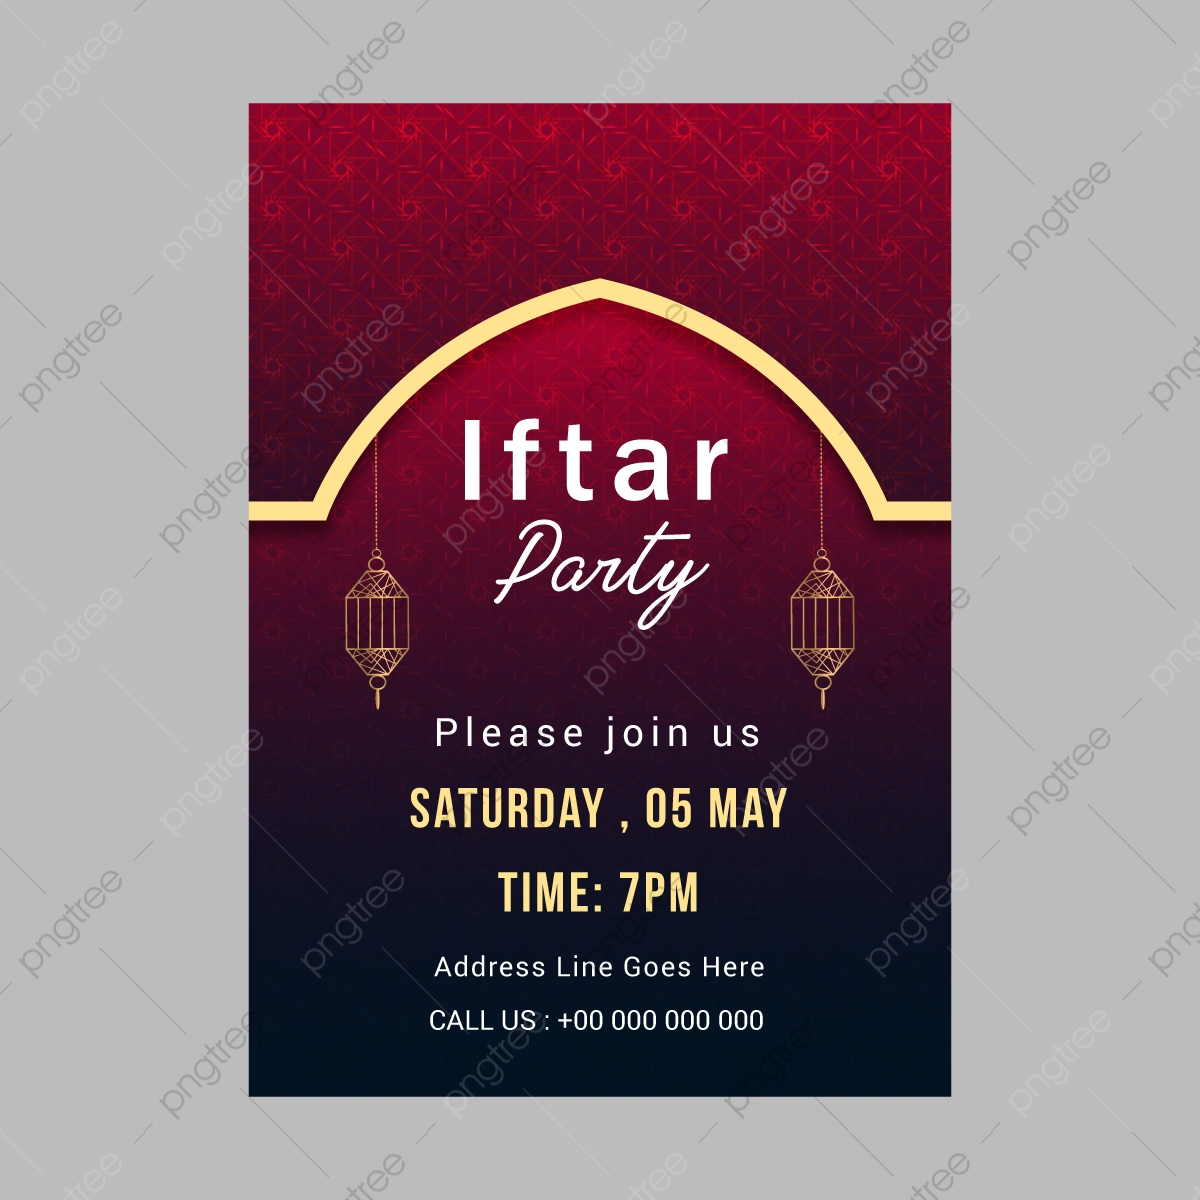 Iftar Party Invitation Card Design Template Download On Pngtree